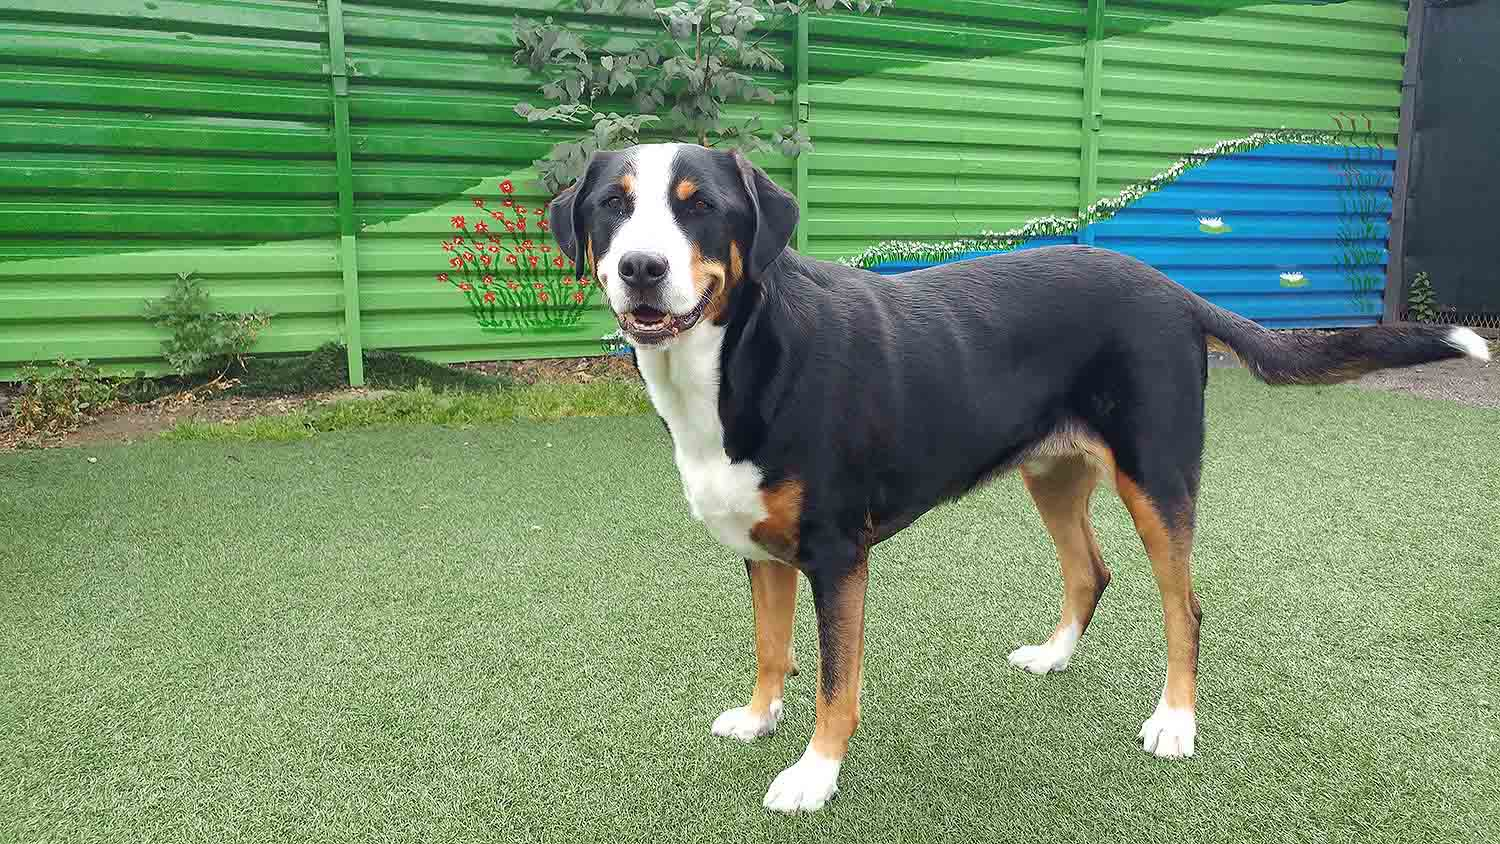 Do Greater Swiss Mountain Dogs Smell?